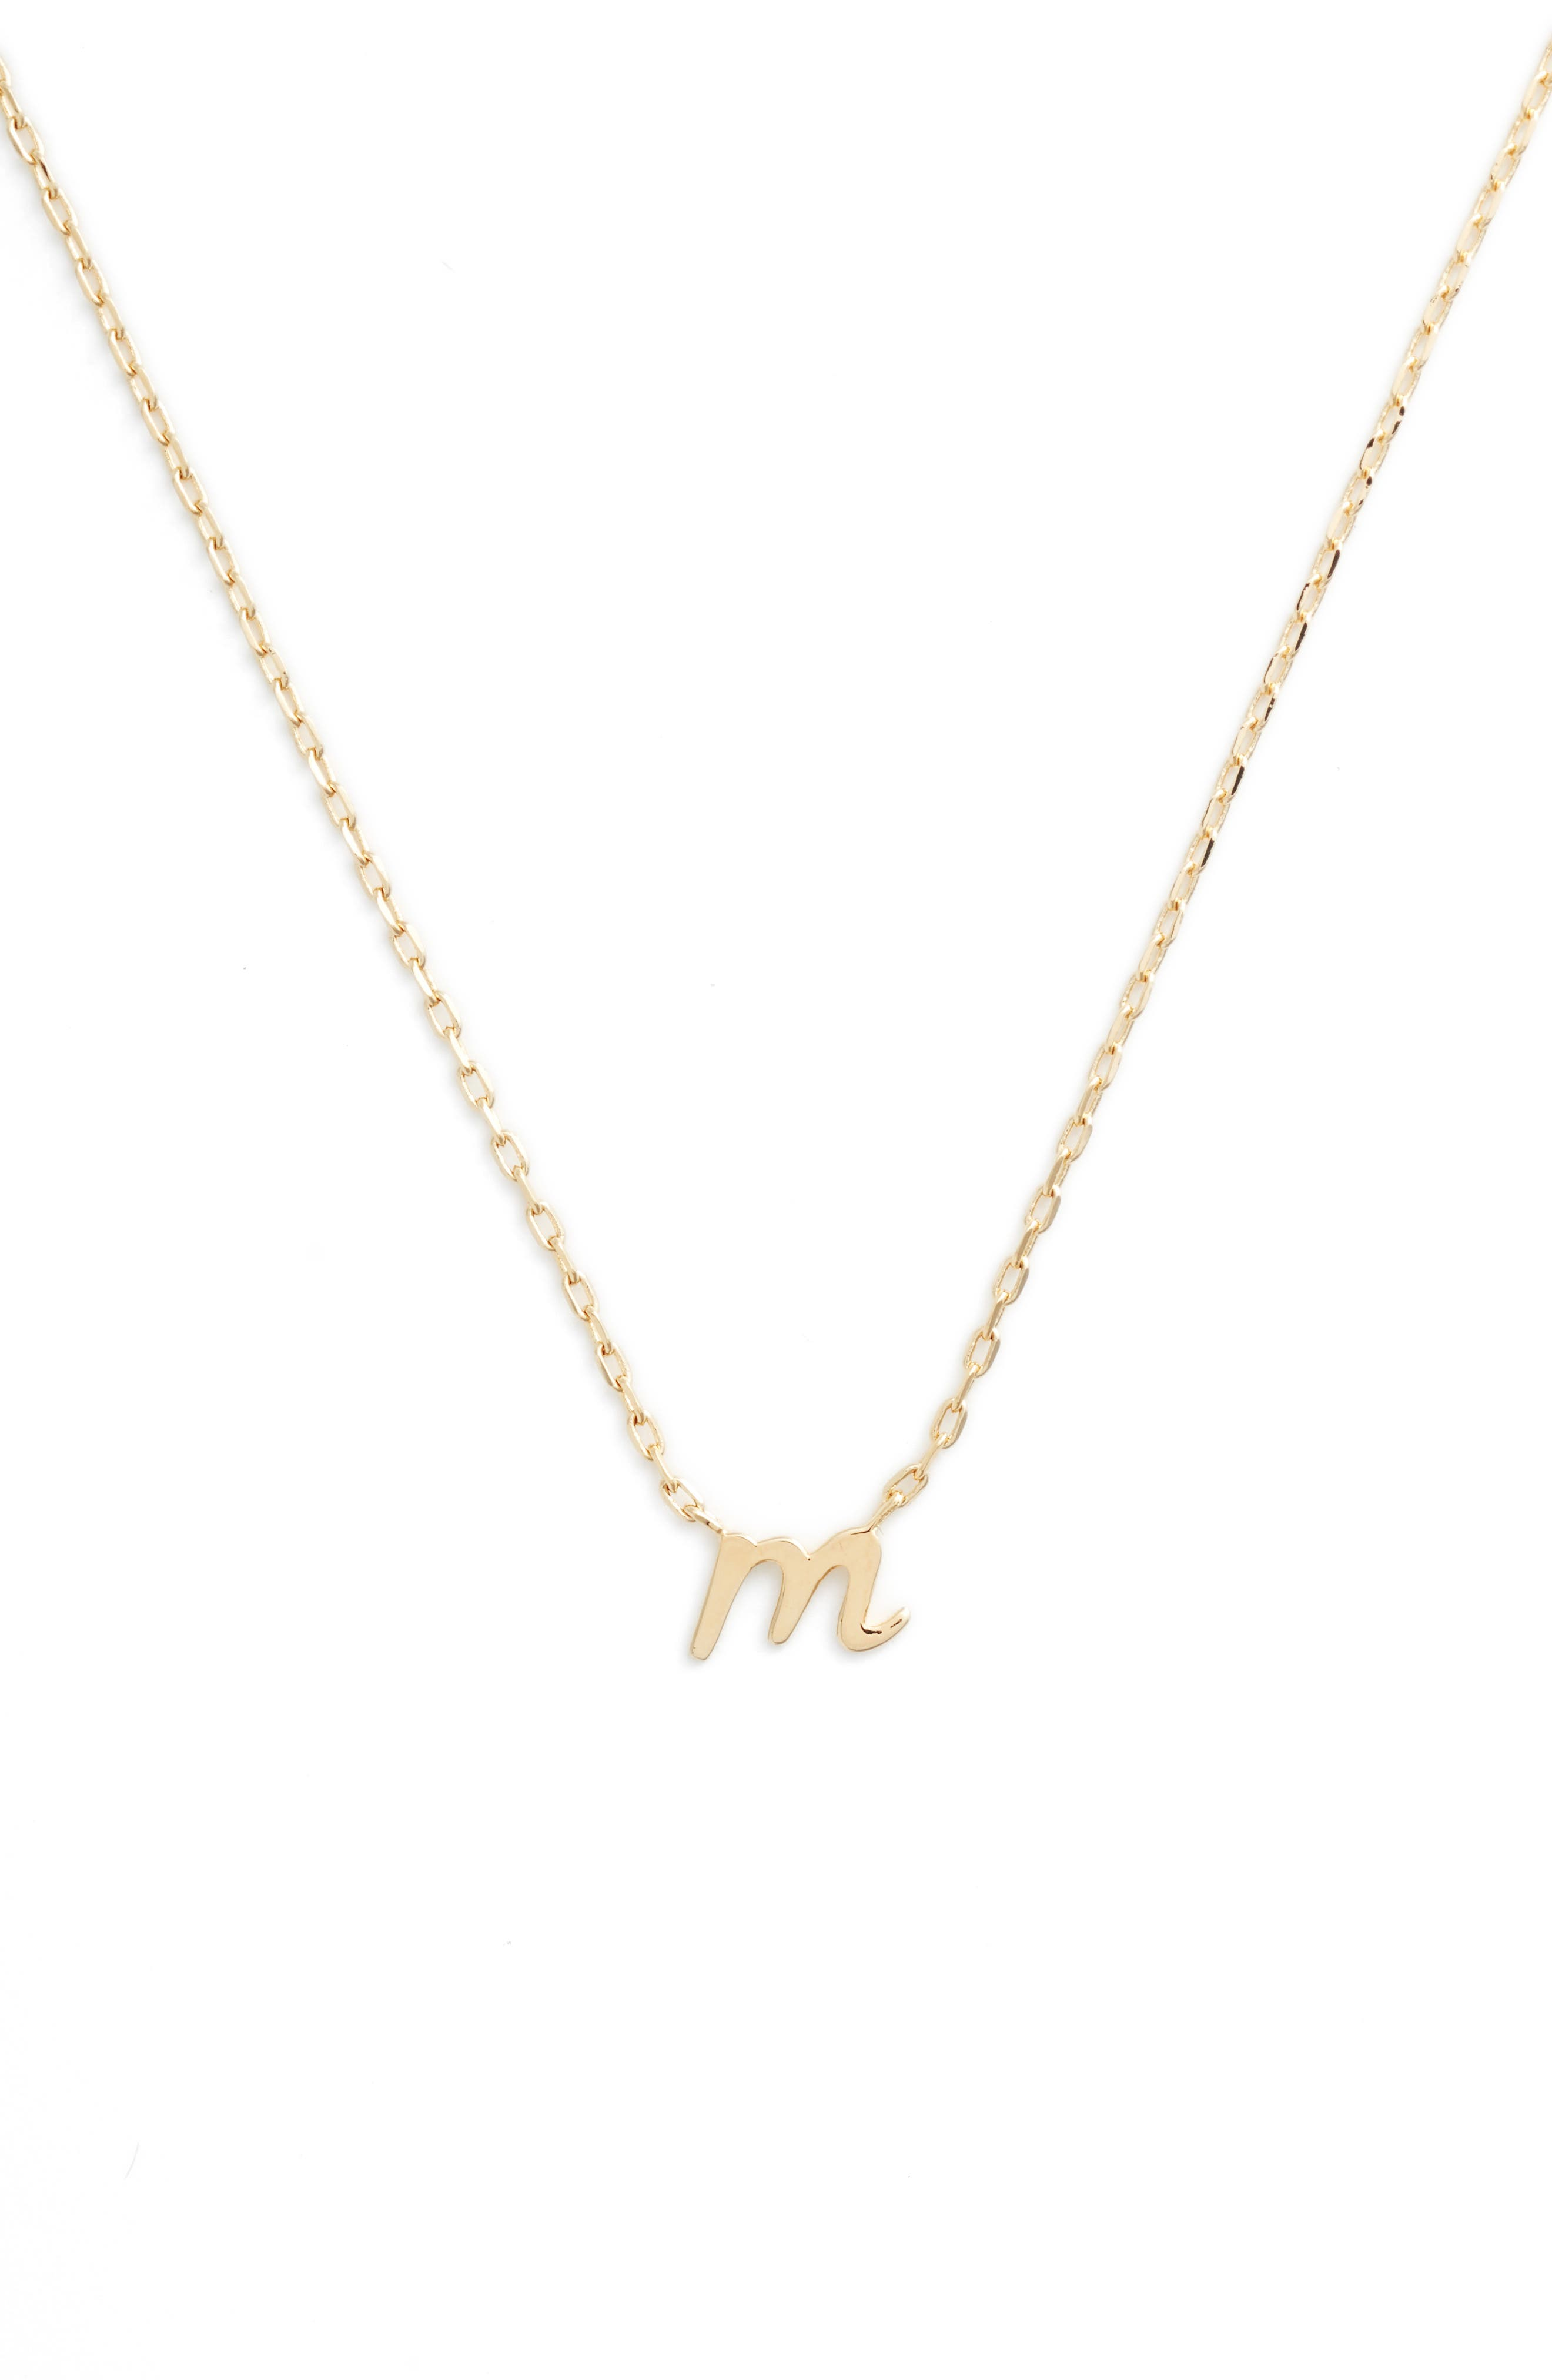 kate spade one in a million initial pendant necklace,                             Main thumbnail 1, color,                             M-GOLD